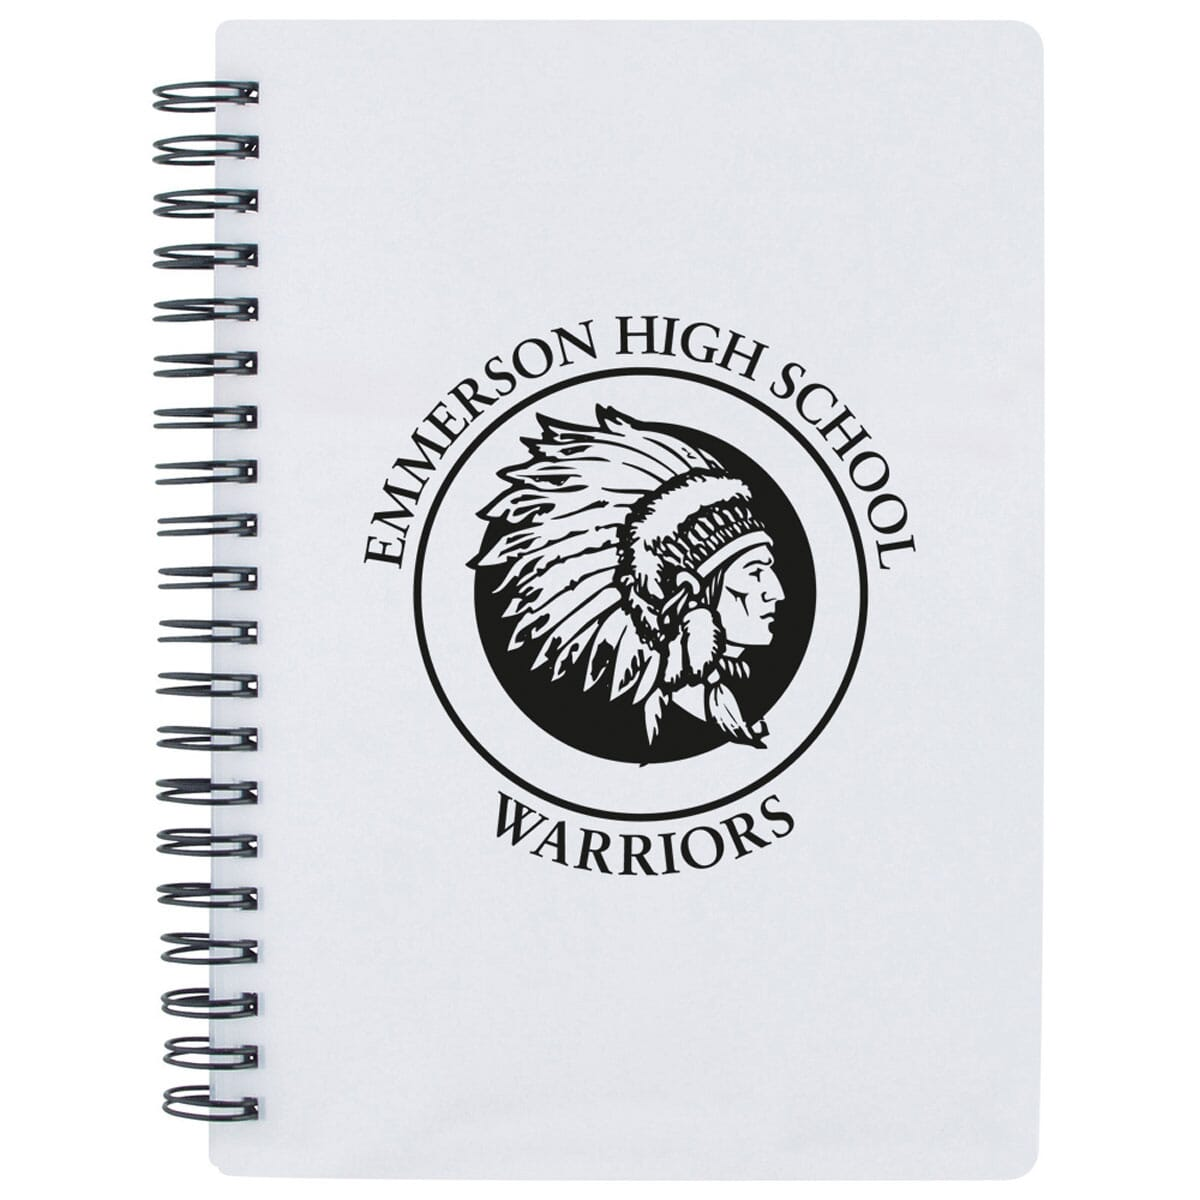 White spiral bound notebook with pencil pouch